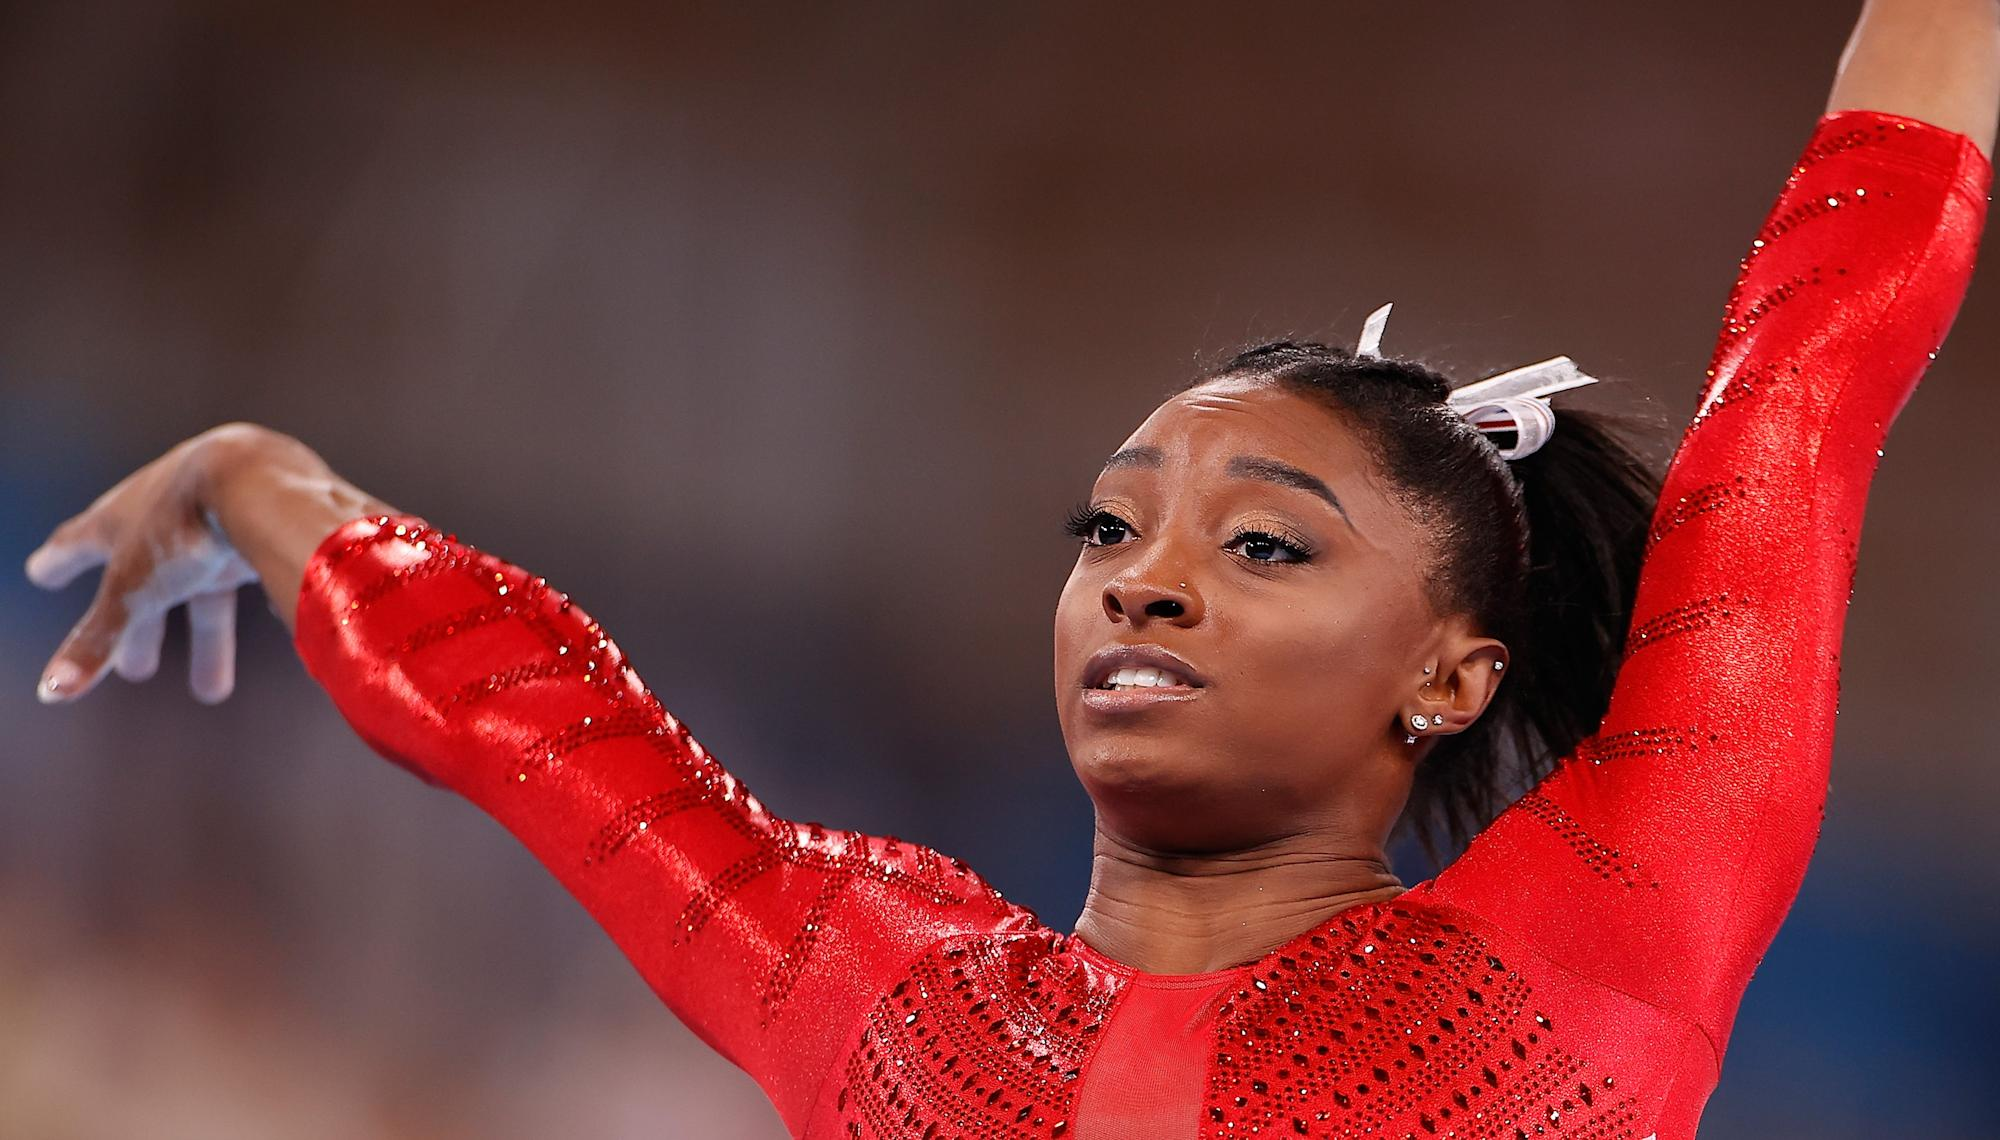 Praising Simone Biles at her breaking point is not dealing with mental health